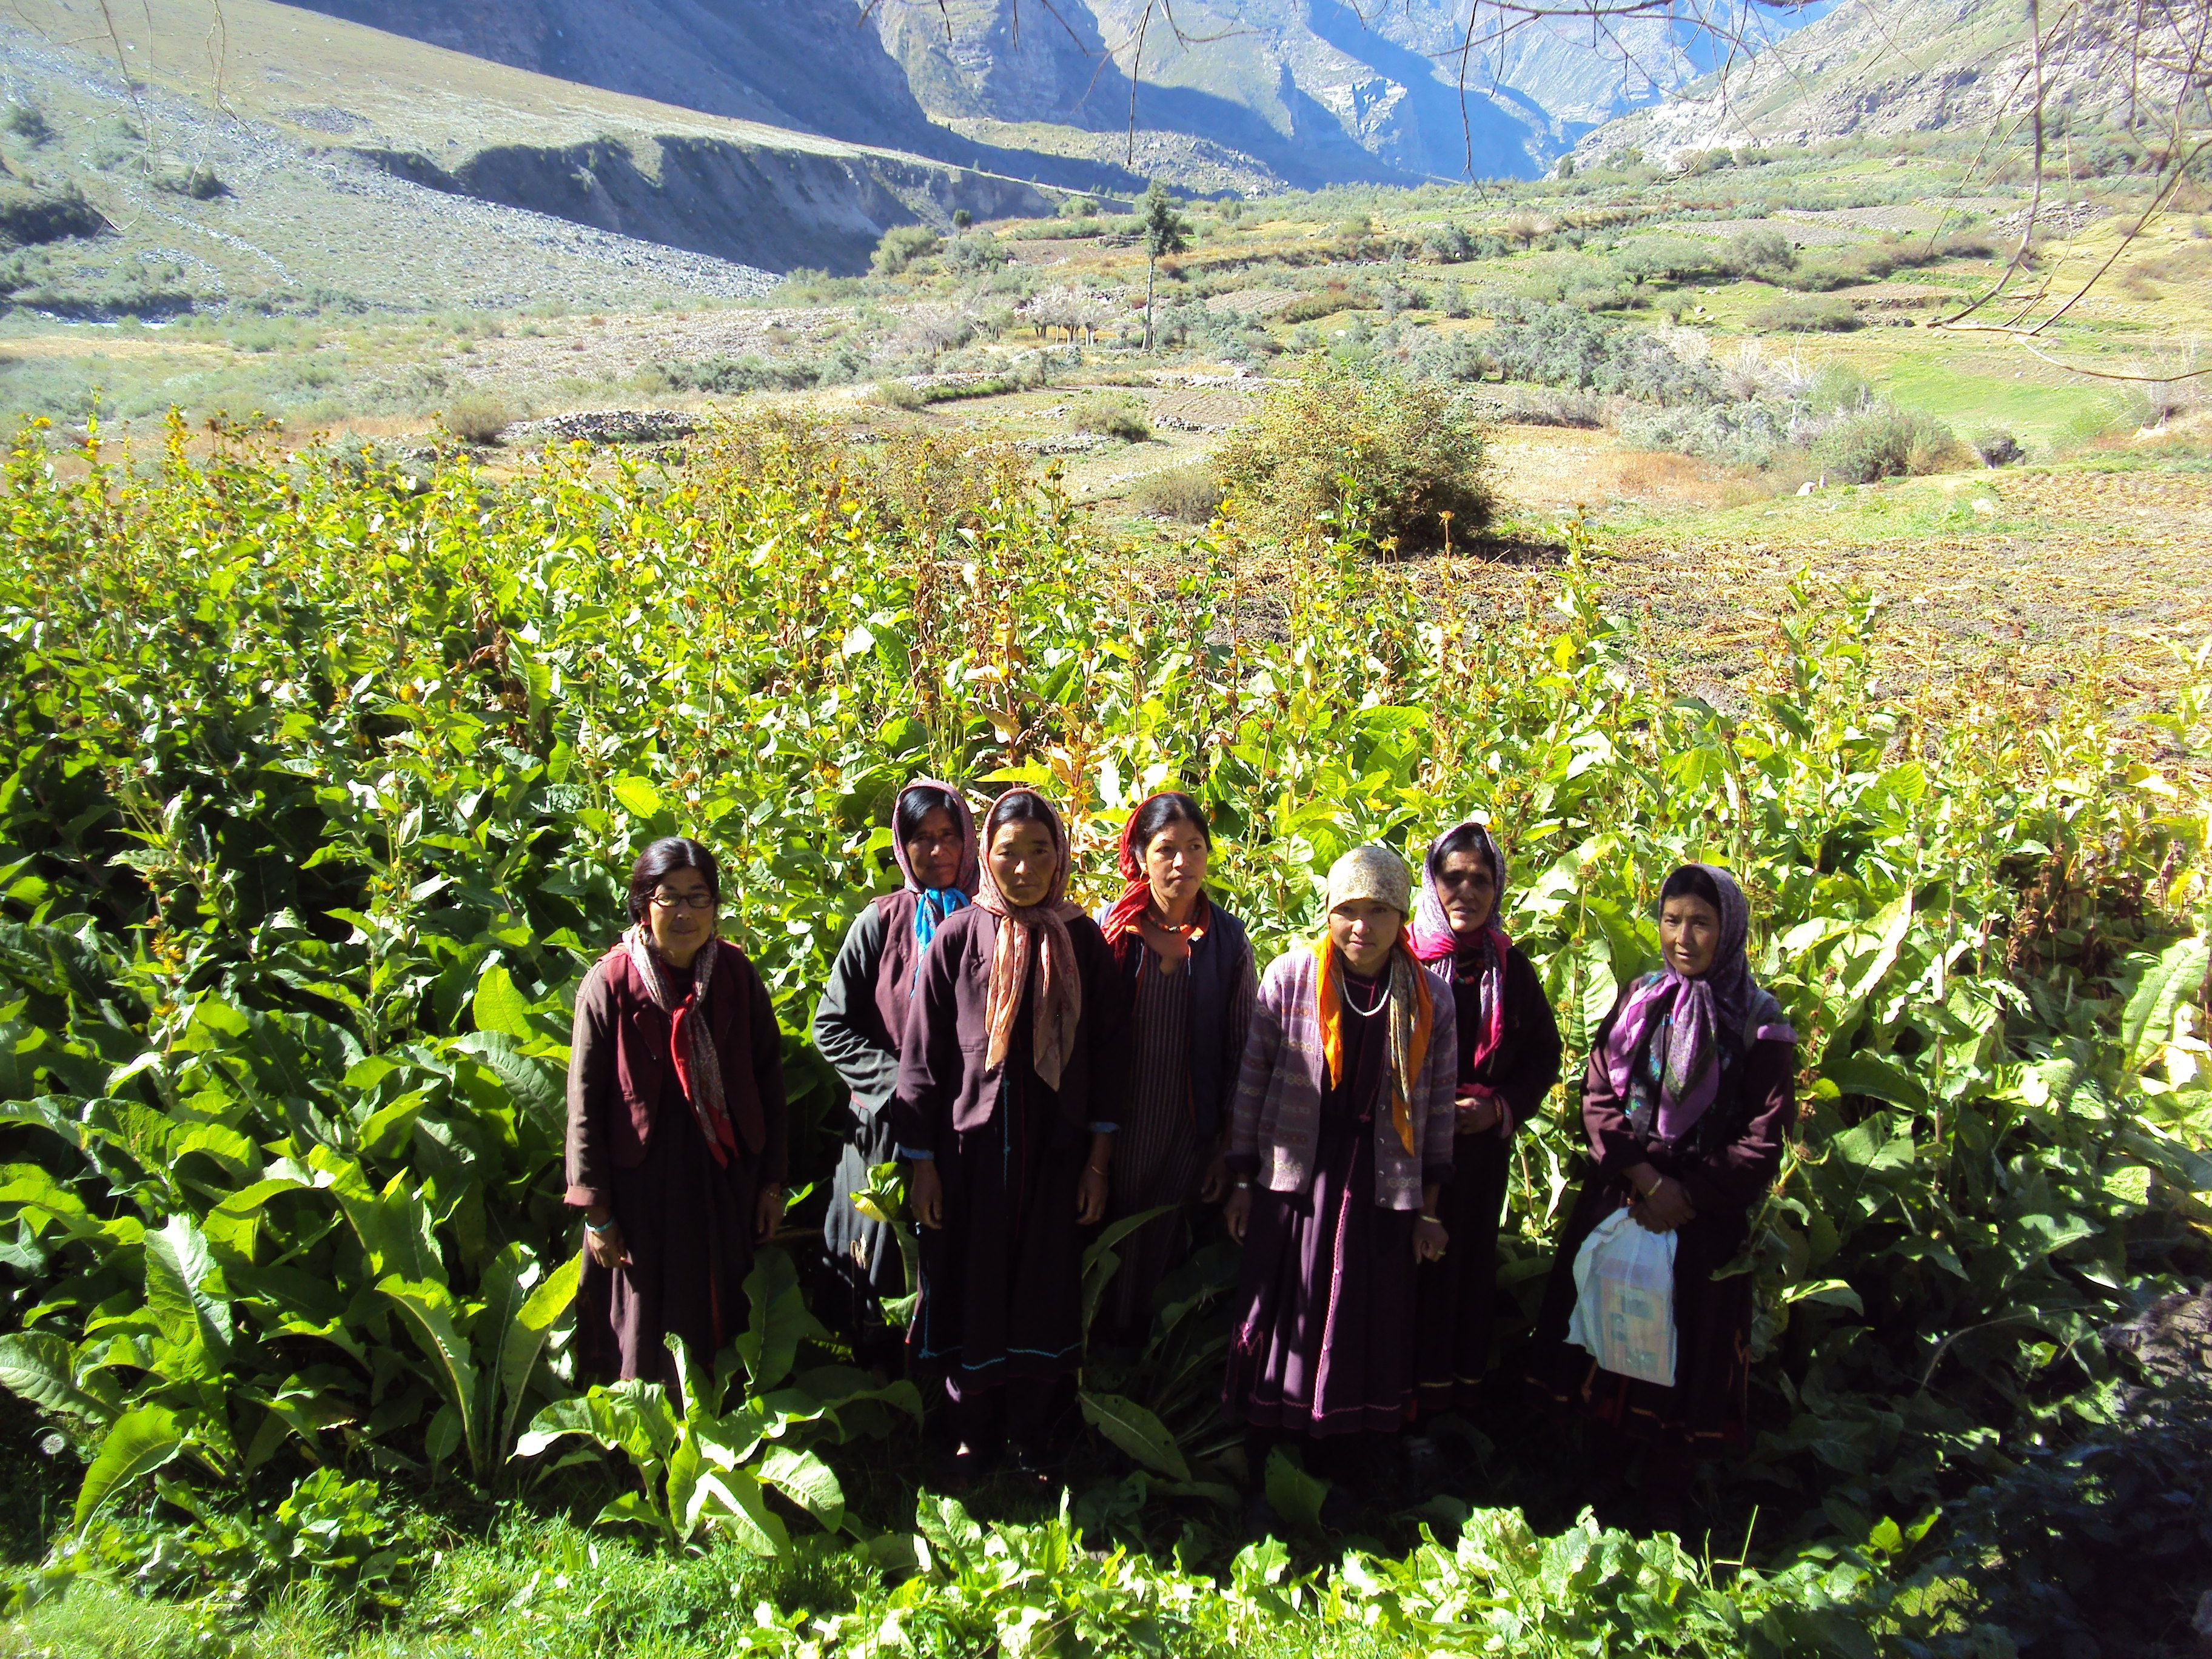 Women small farmer group cultivating medicinal plants in